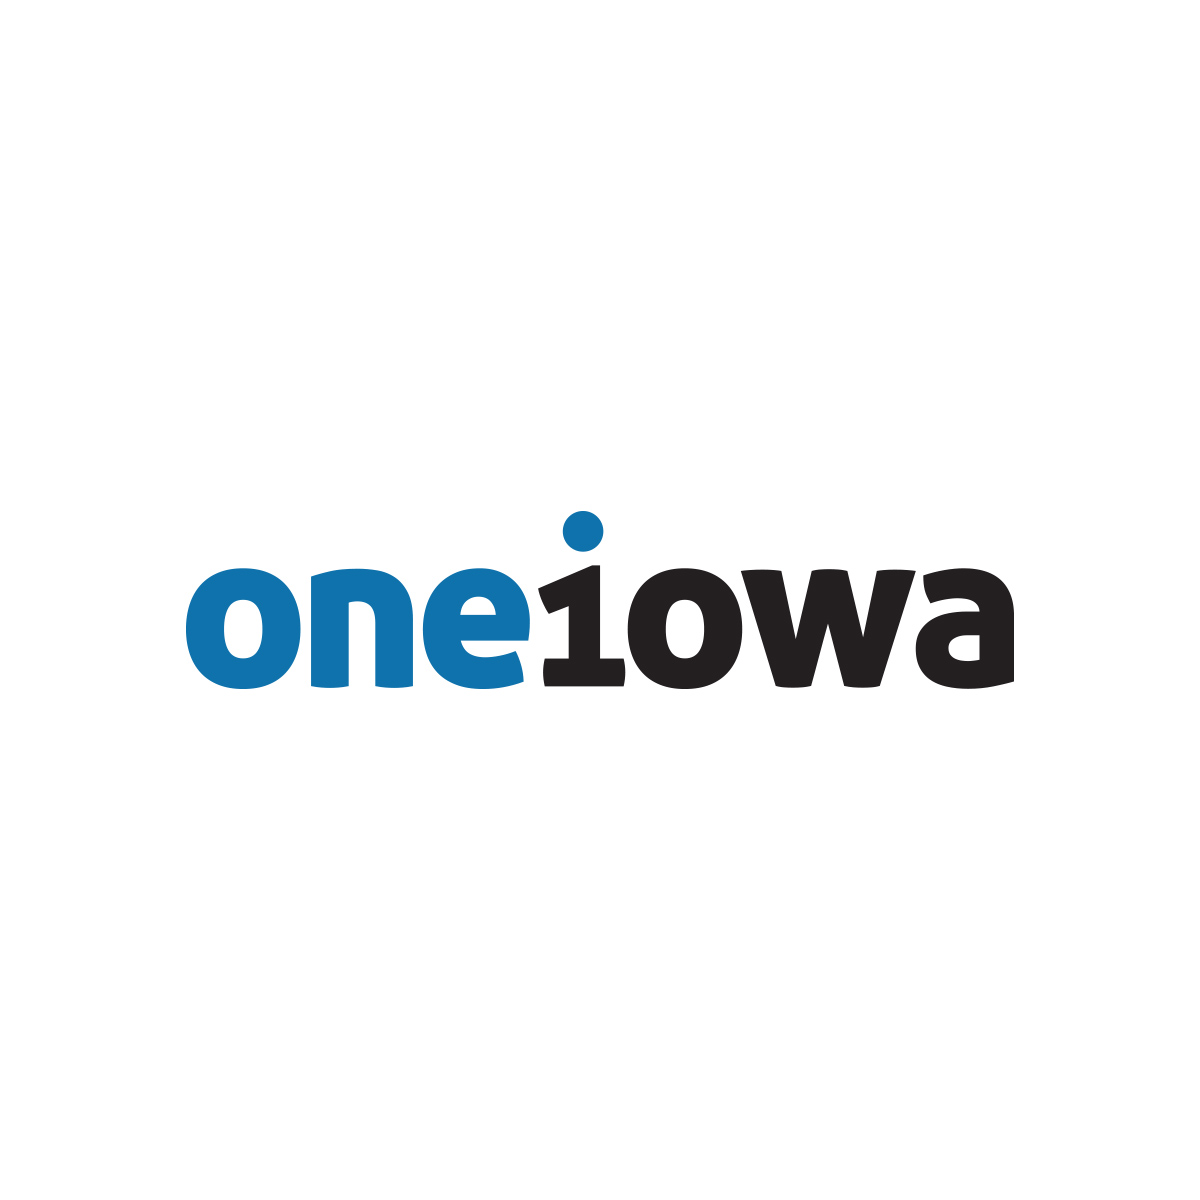 one iowa logo